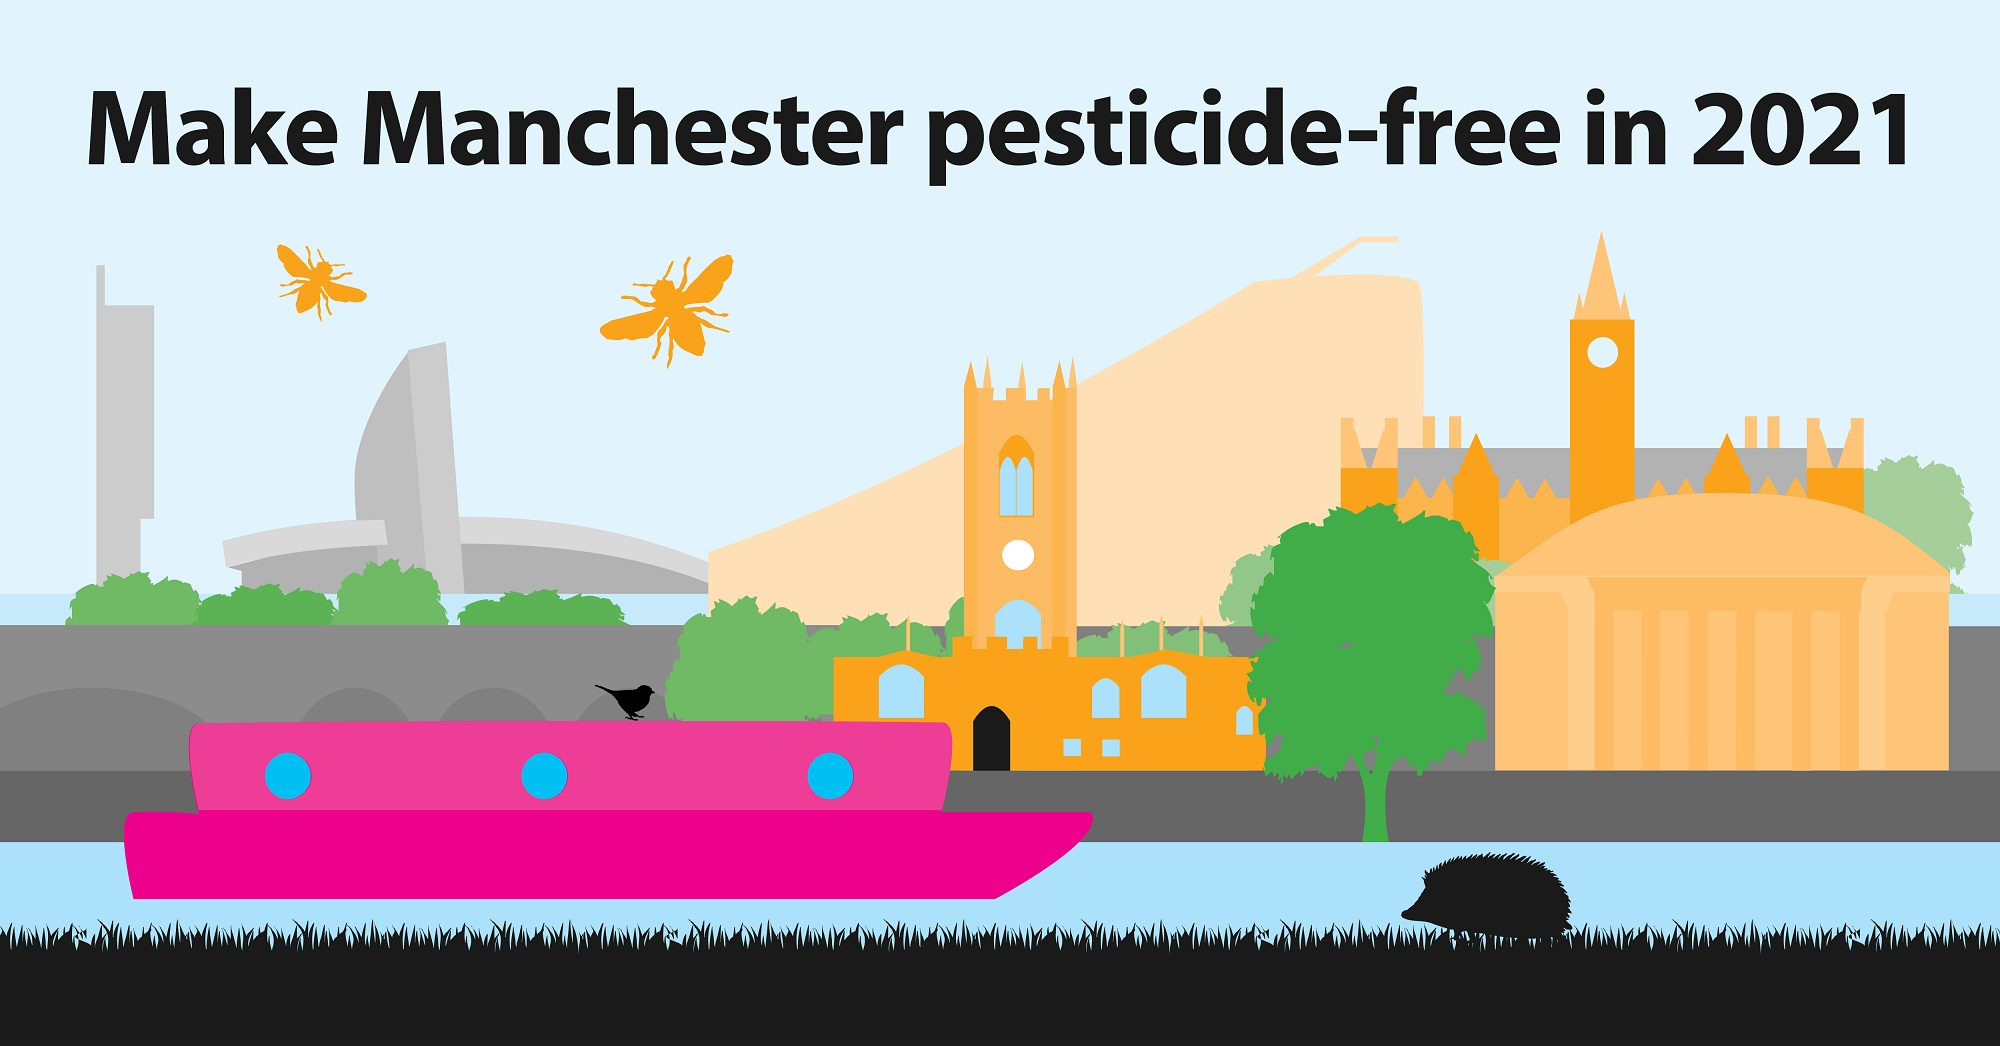 Take action in Manchester